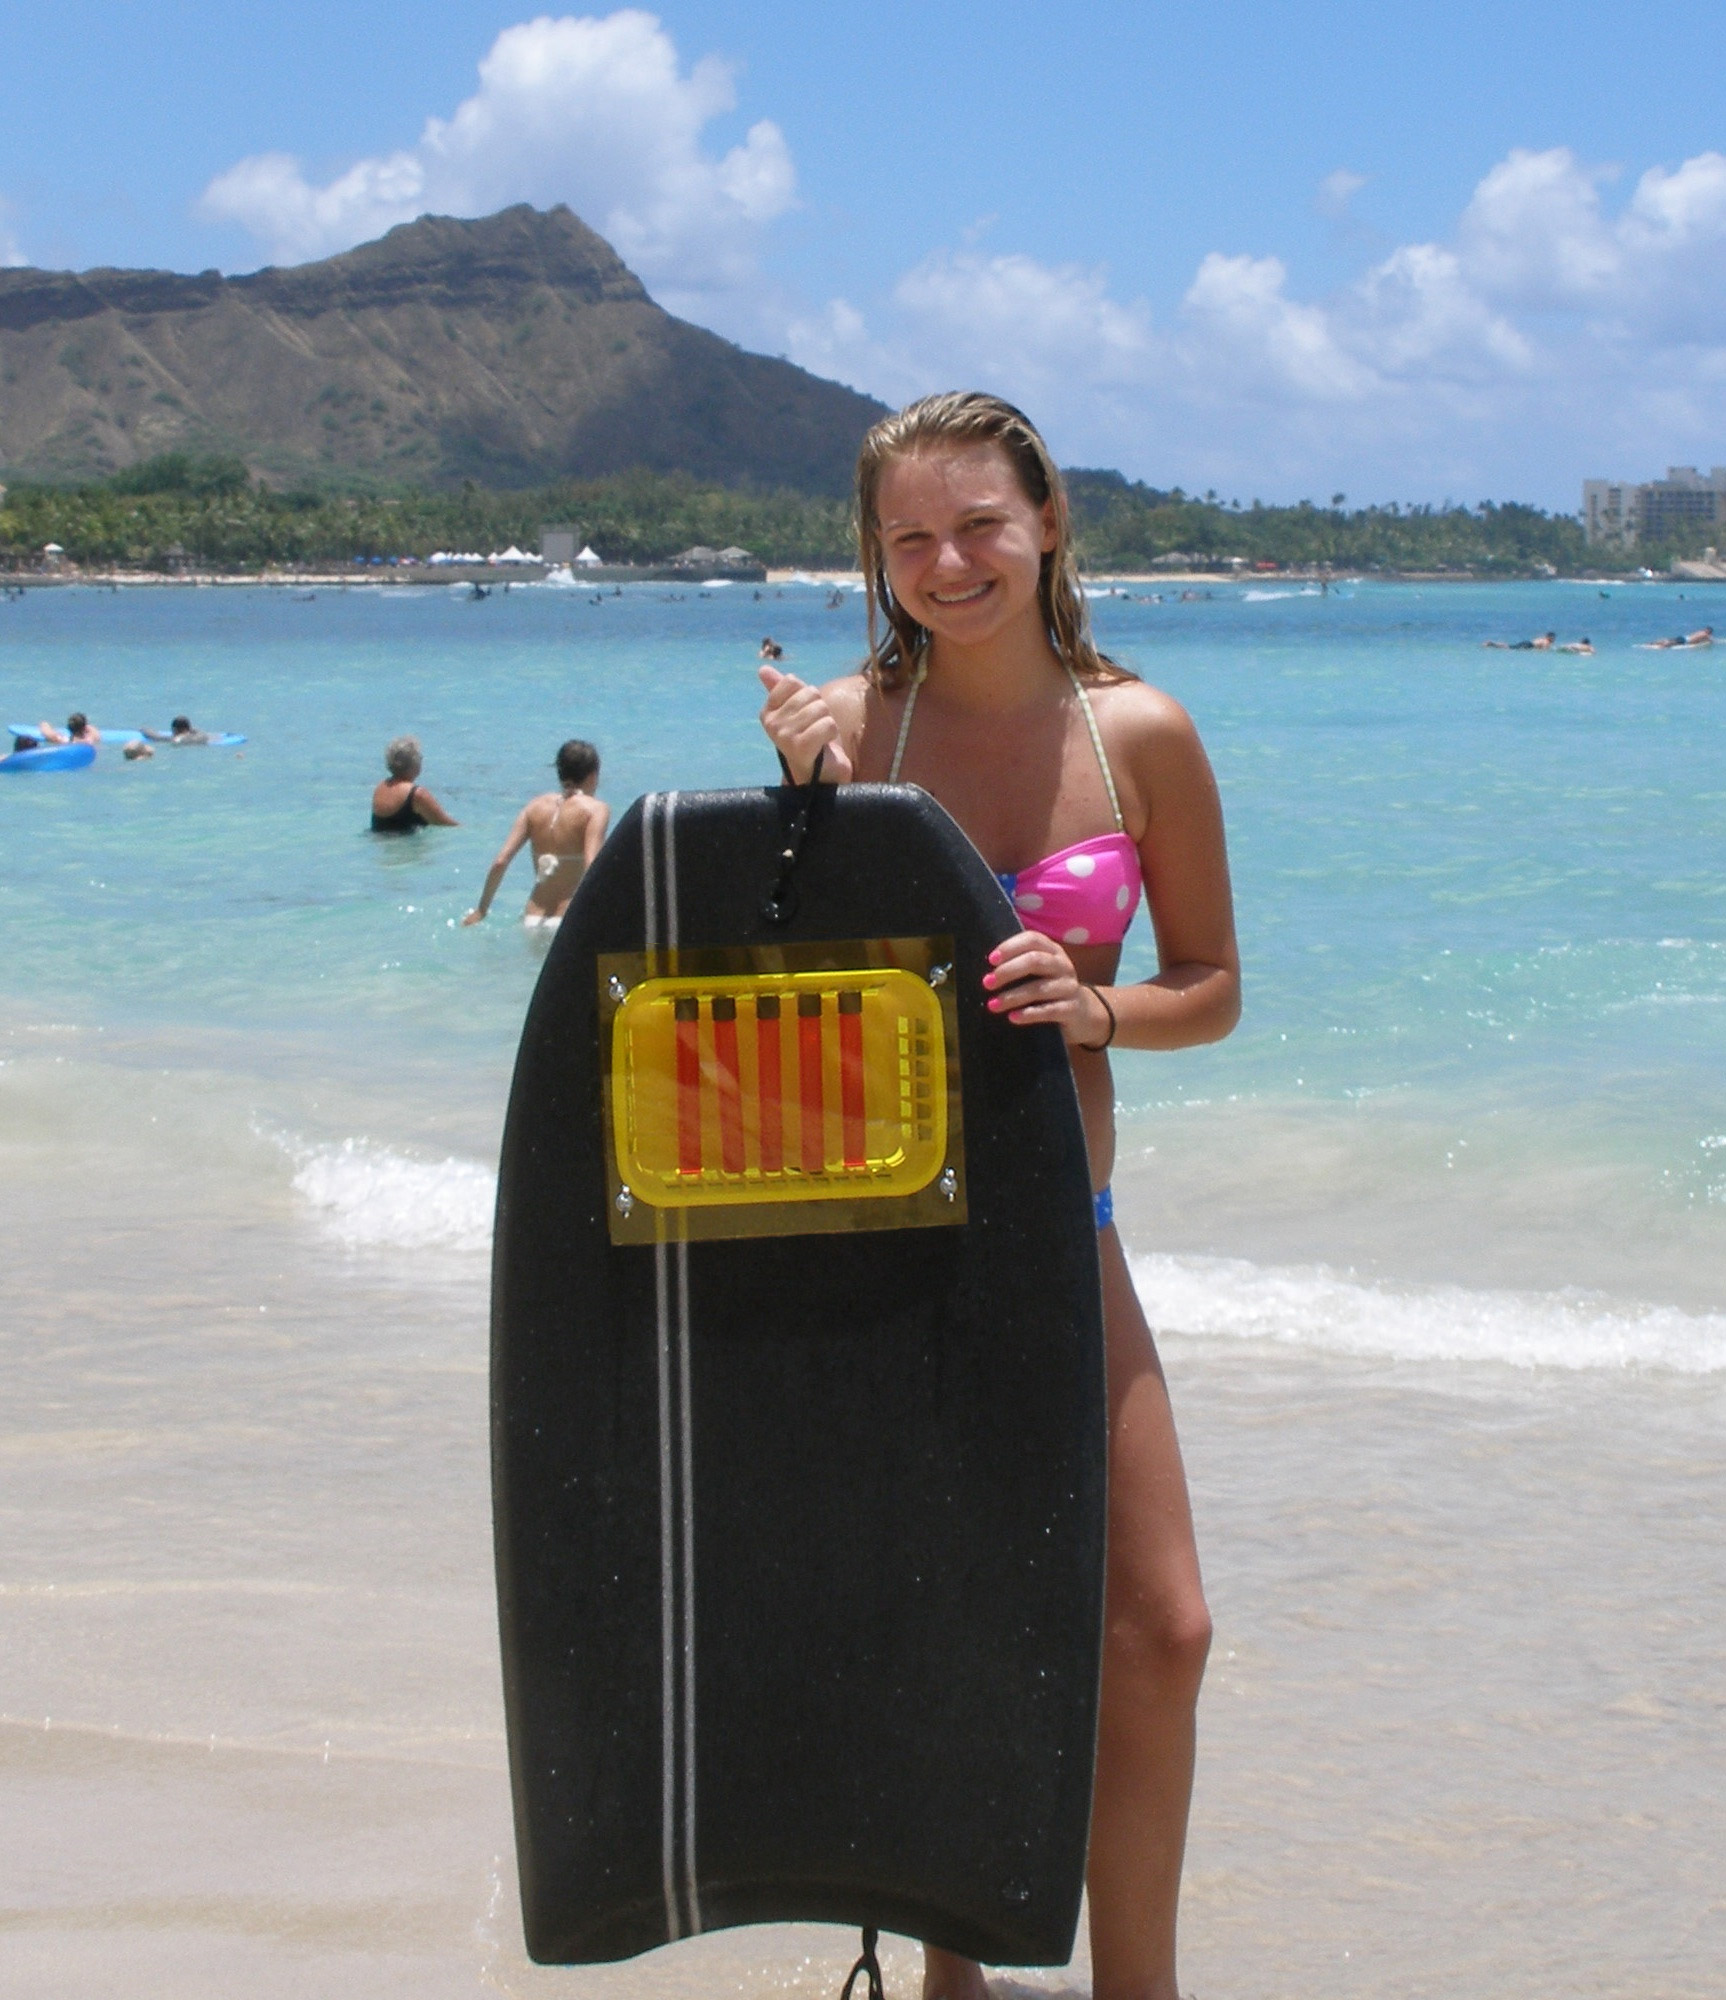 Girl holding photochemical reactor surfboard on beach in Hawaii